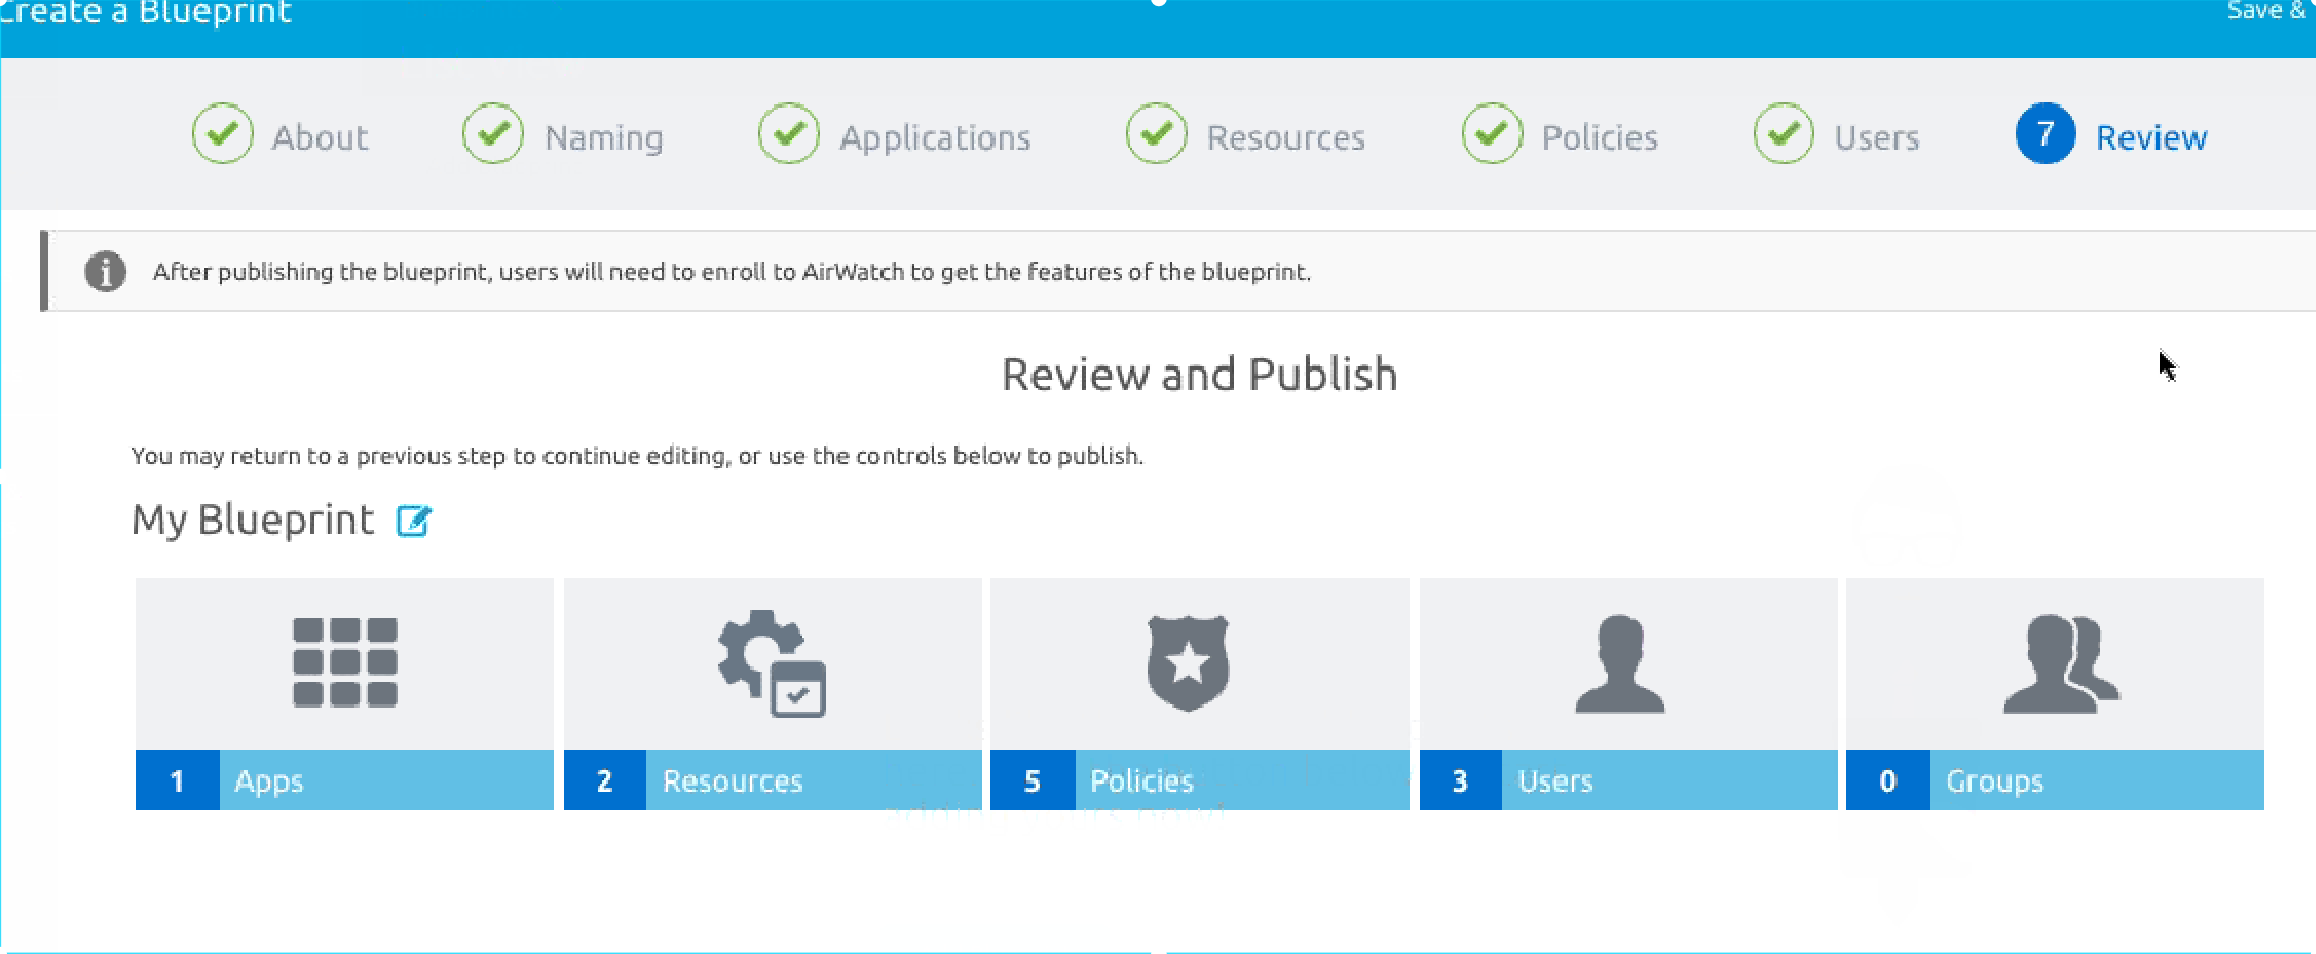 VMware AirWatch Express setup – a quick walkthrough the console